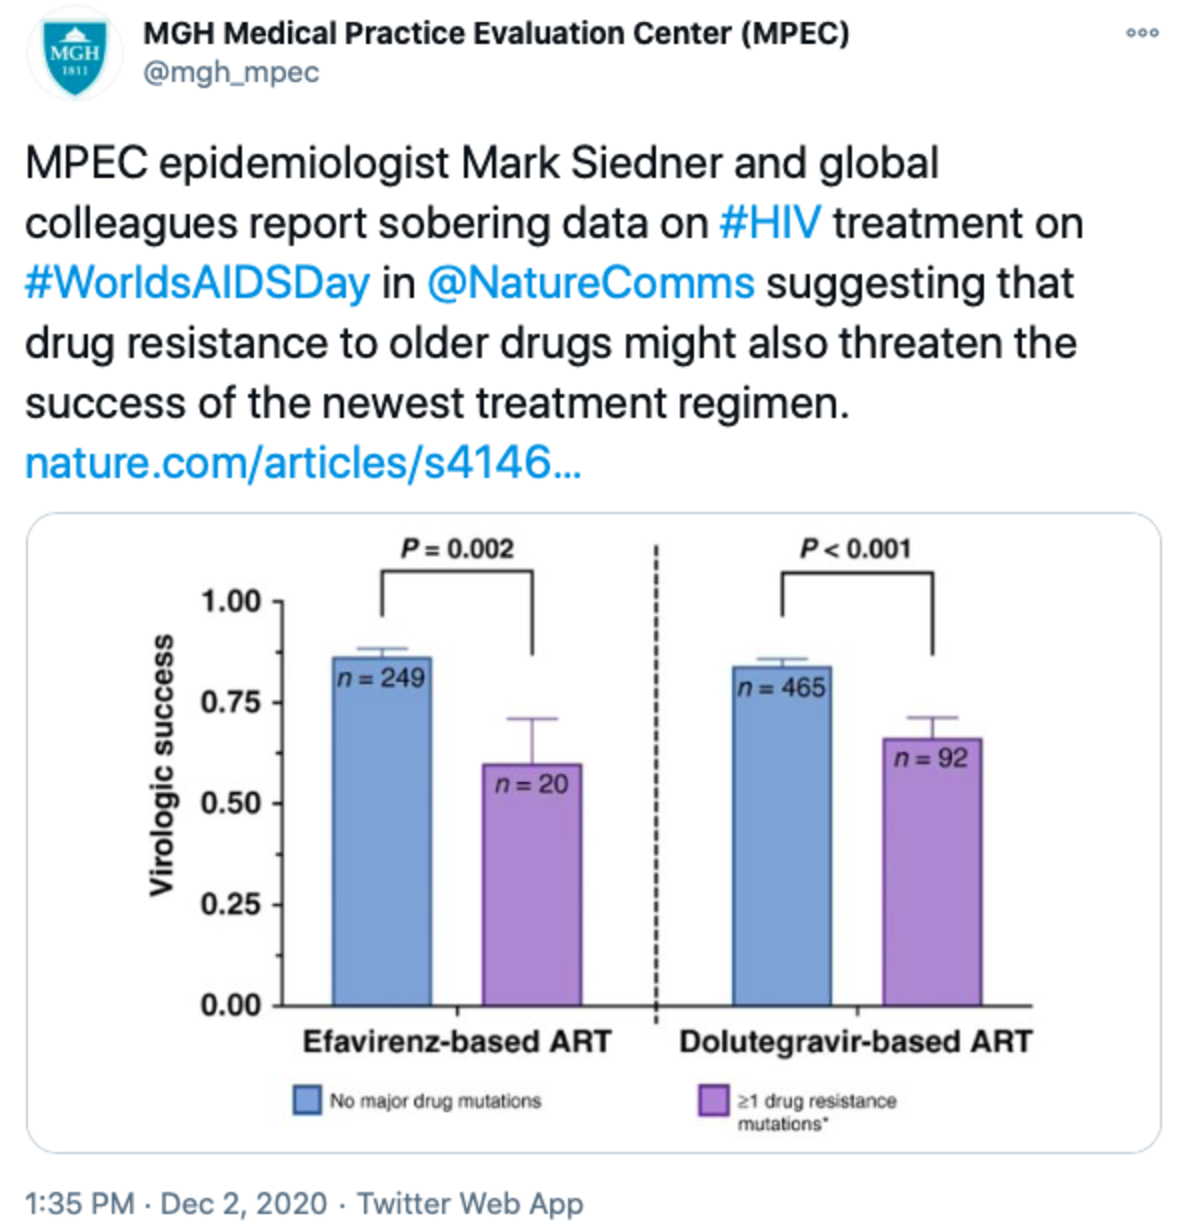 Tweet that reads: MPEC epidemiologist Mark Siedner and global colleagues report sobering data on #HIV treatment on #WorldsAIDSDay in @NatureComms suggesting that drug resistance to older drugs might also threaten the success of the newest treatment regimen.